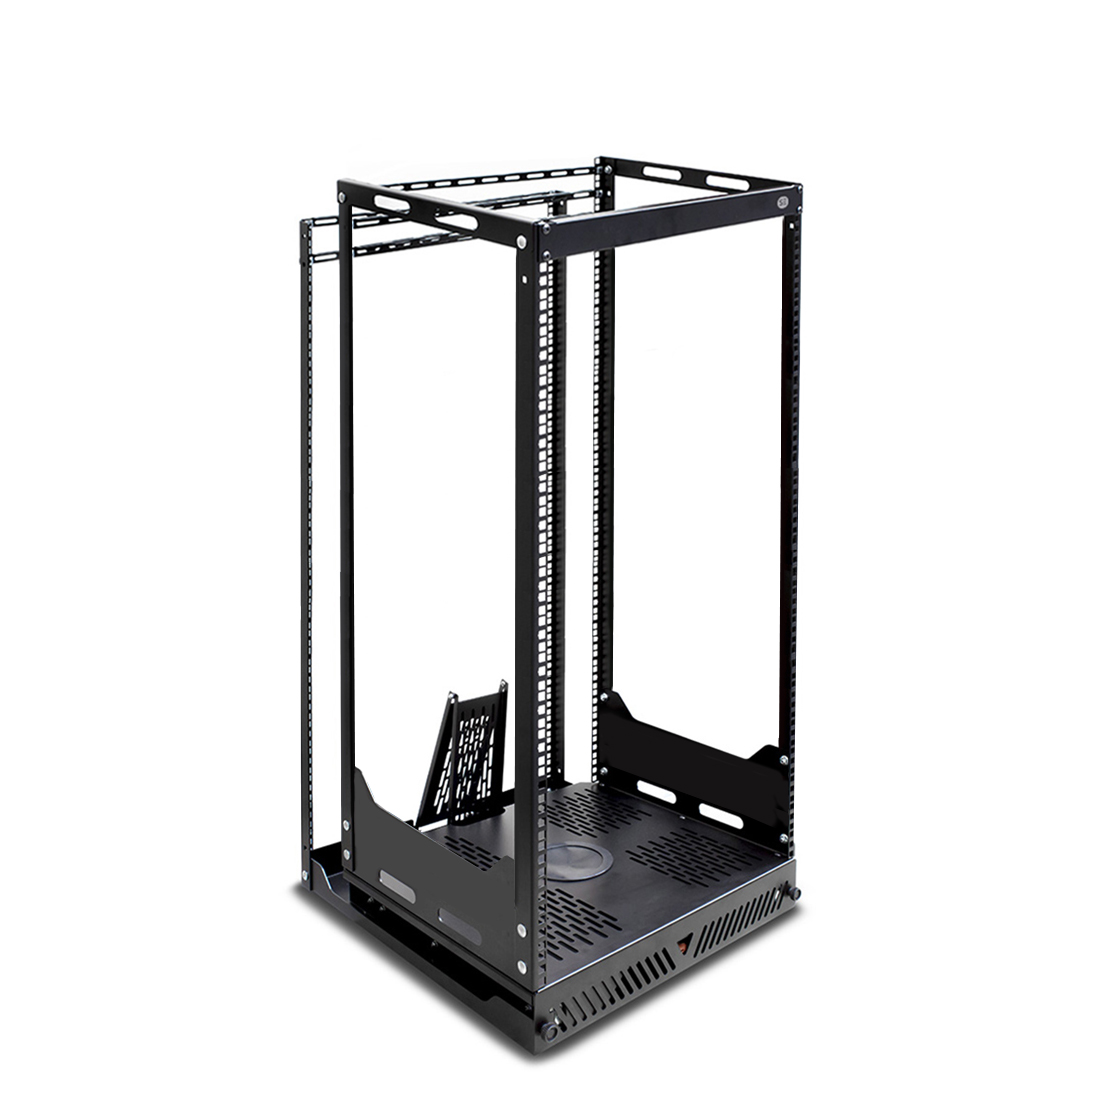 Serveredge 24RU Slide & Swivel Server rack